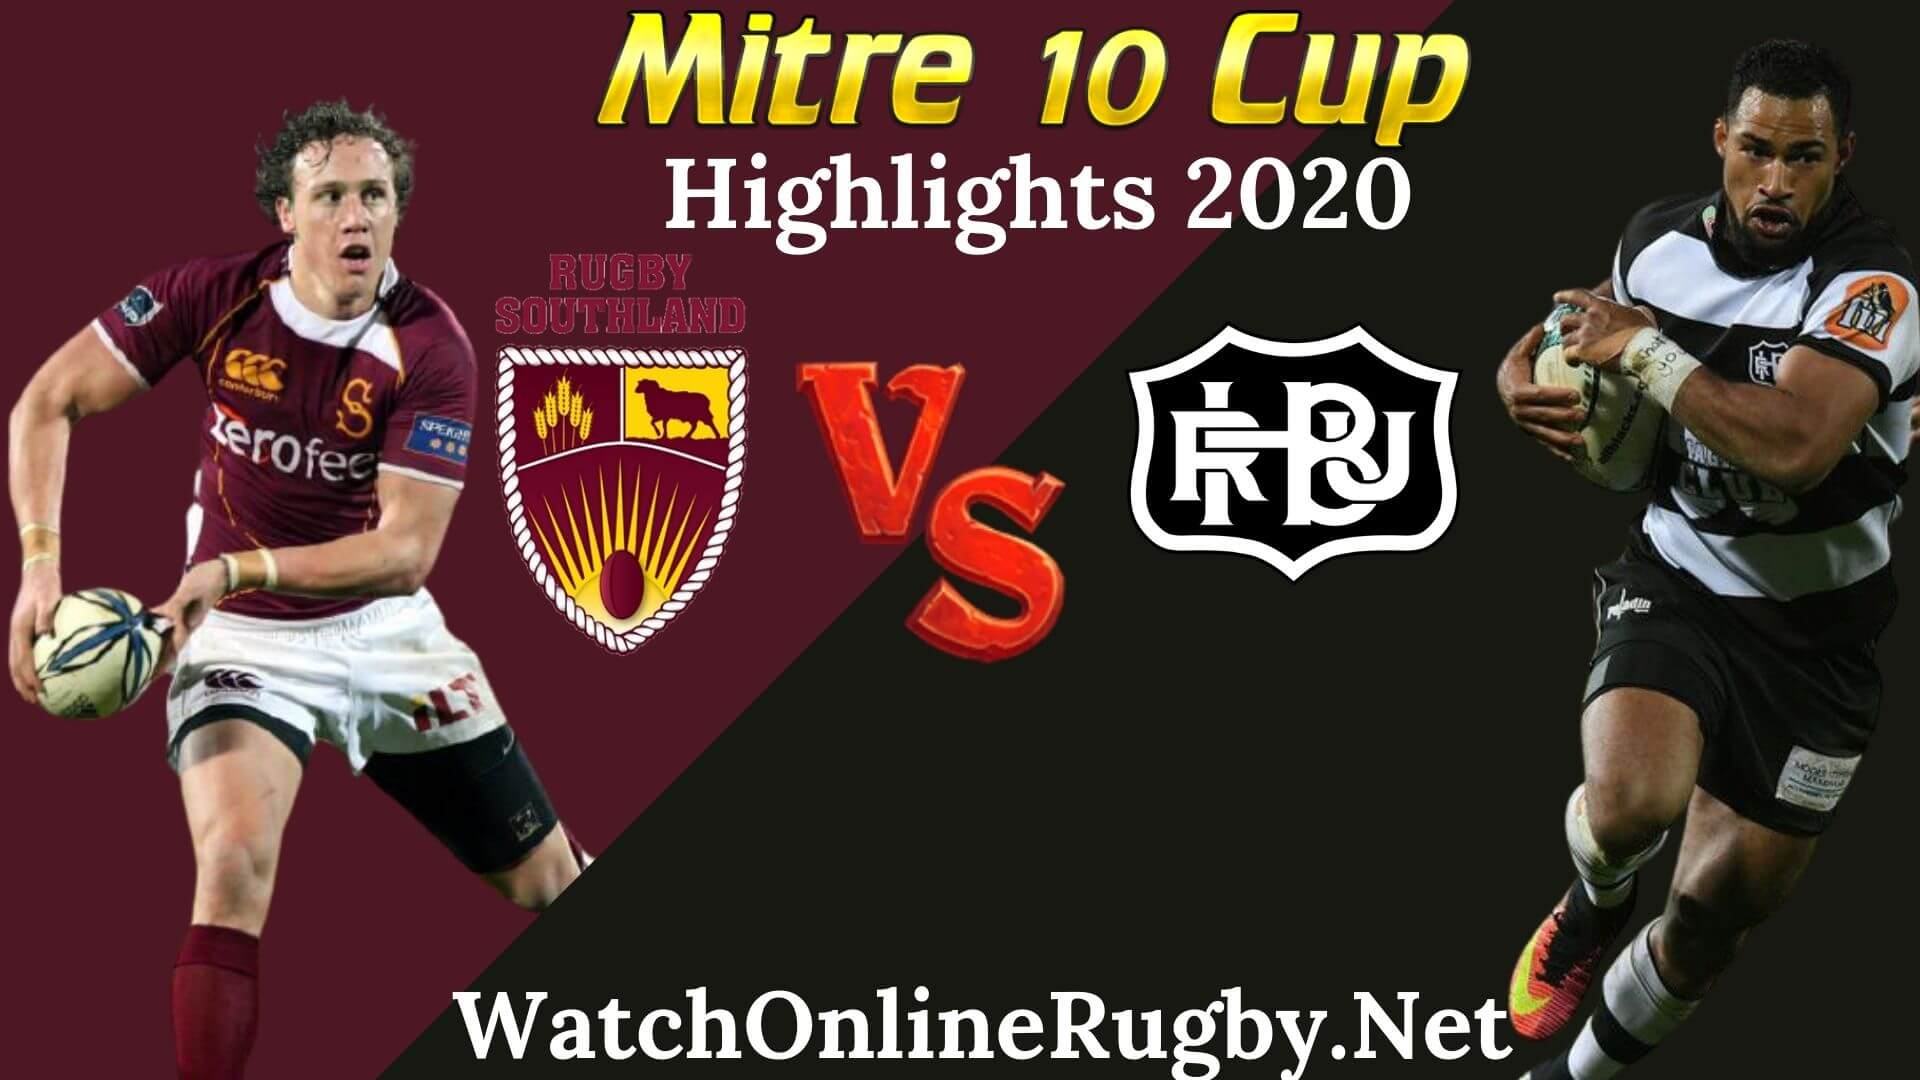 Southland vs Hawkes Bay RD 1 Highlights 2020 M10 Cup